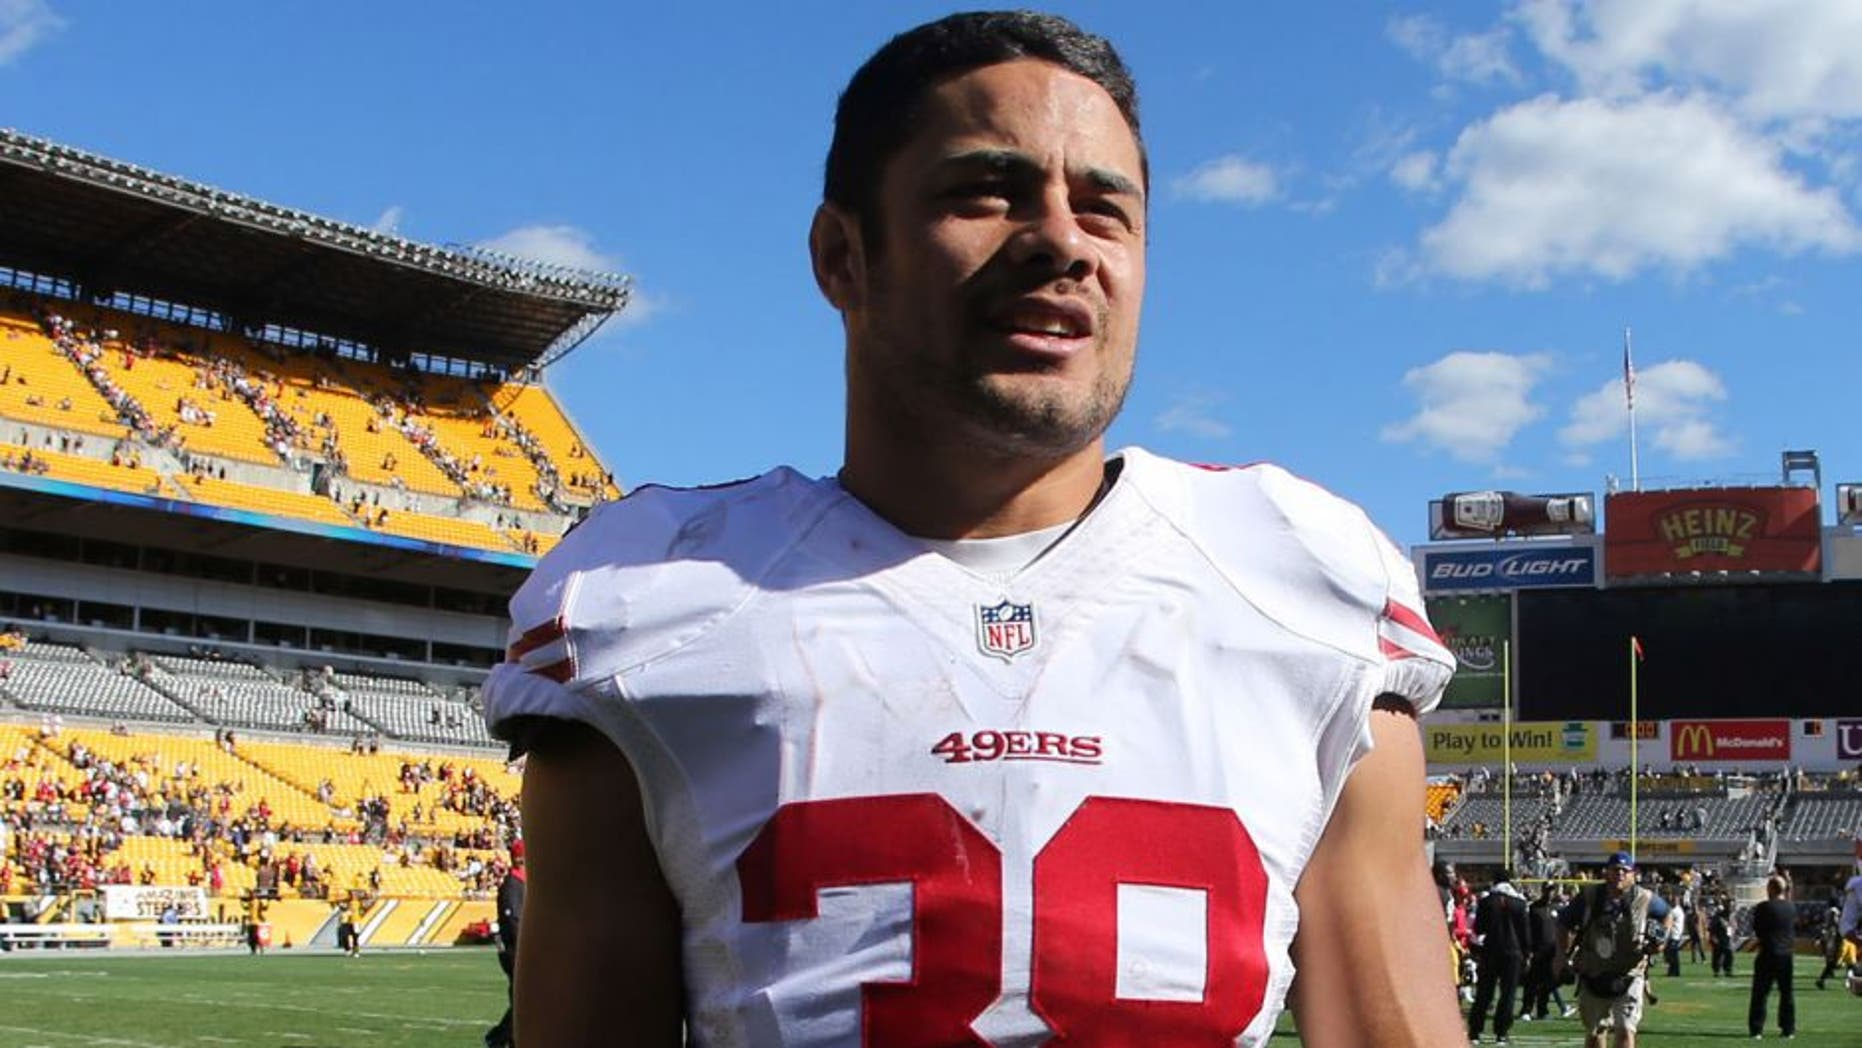 Sep 20, 2015; Pittsburgh, PA, USA; San Francisco 49ers running back Jarryd Hayne (38) walks off the field after playing the Pittsburgh Steelers at Heinz Field. The Steelers won 43-18. Mandatory Credit: Charles LeClaire-USA TODAY Sports